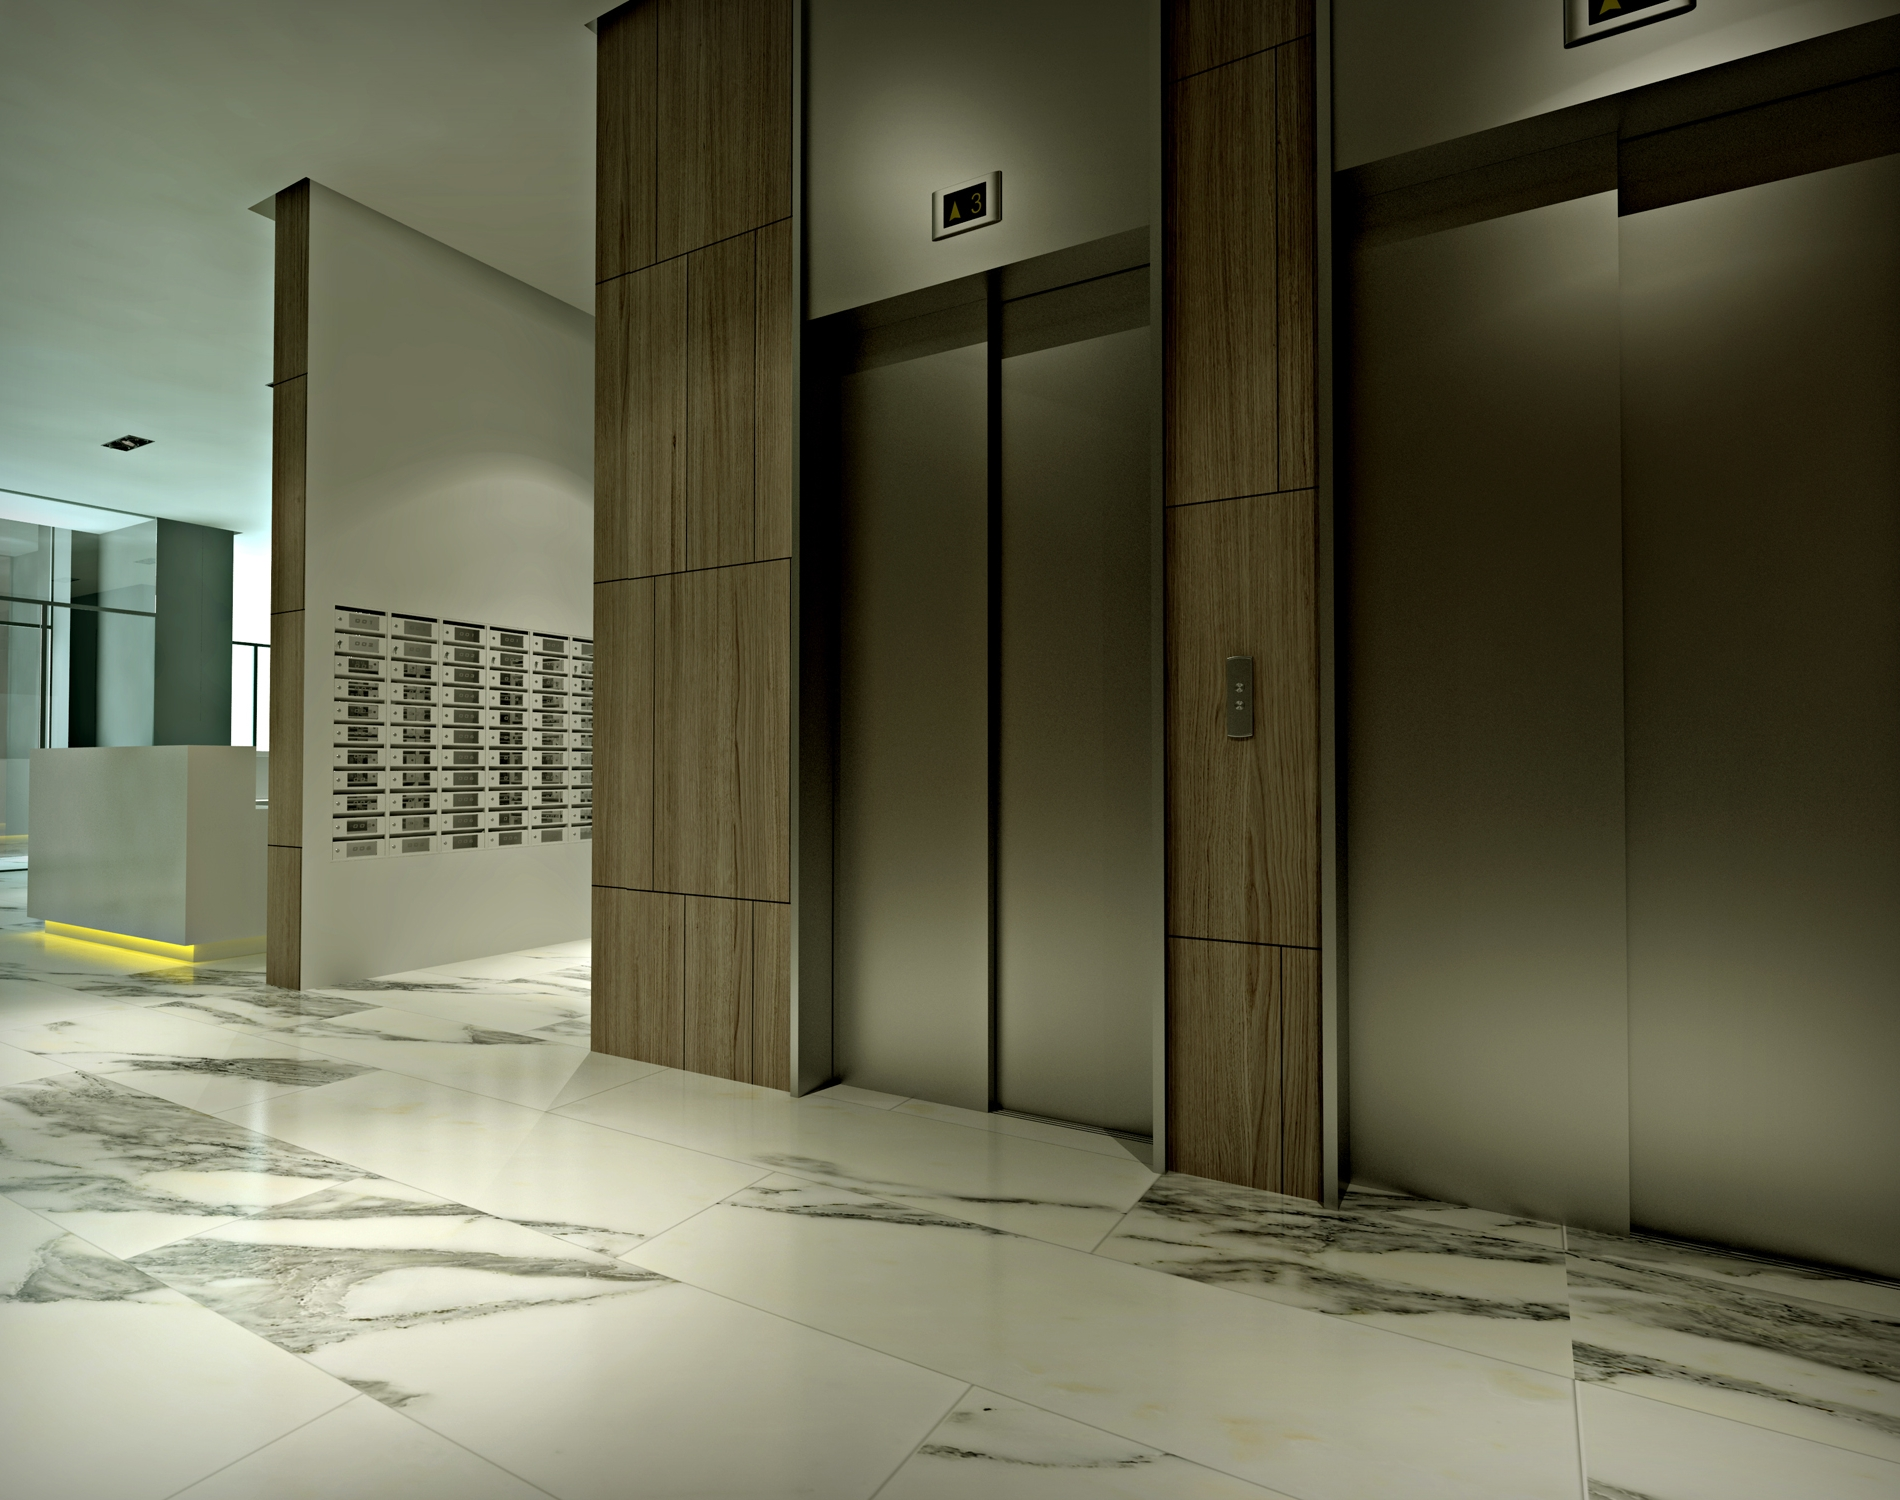 Design the lobby of an apartment building for Apartment lobby design